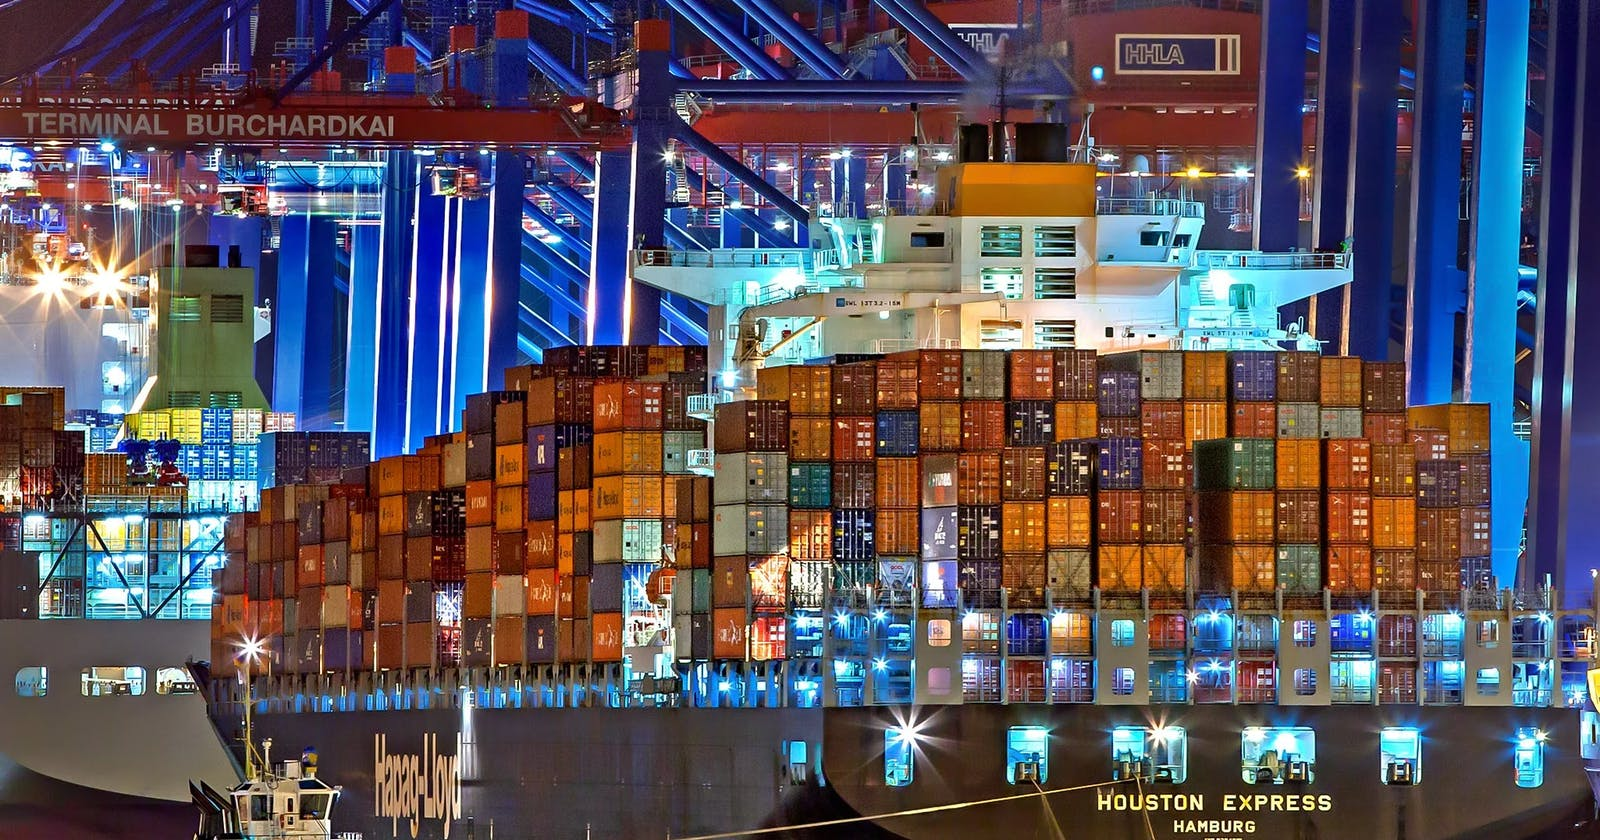 Demystifying Containers